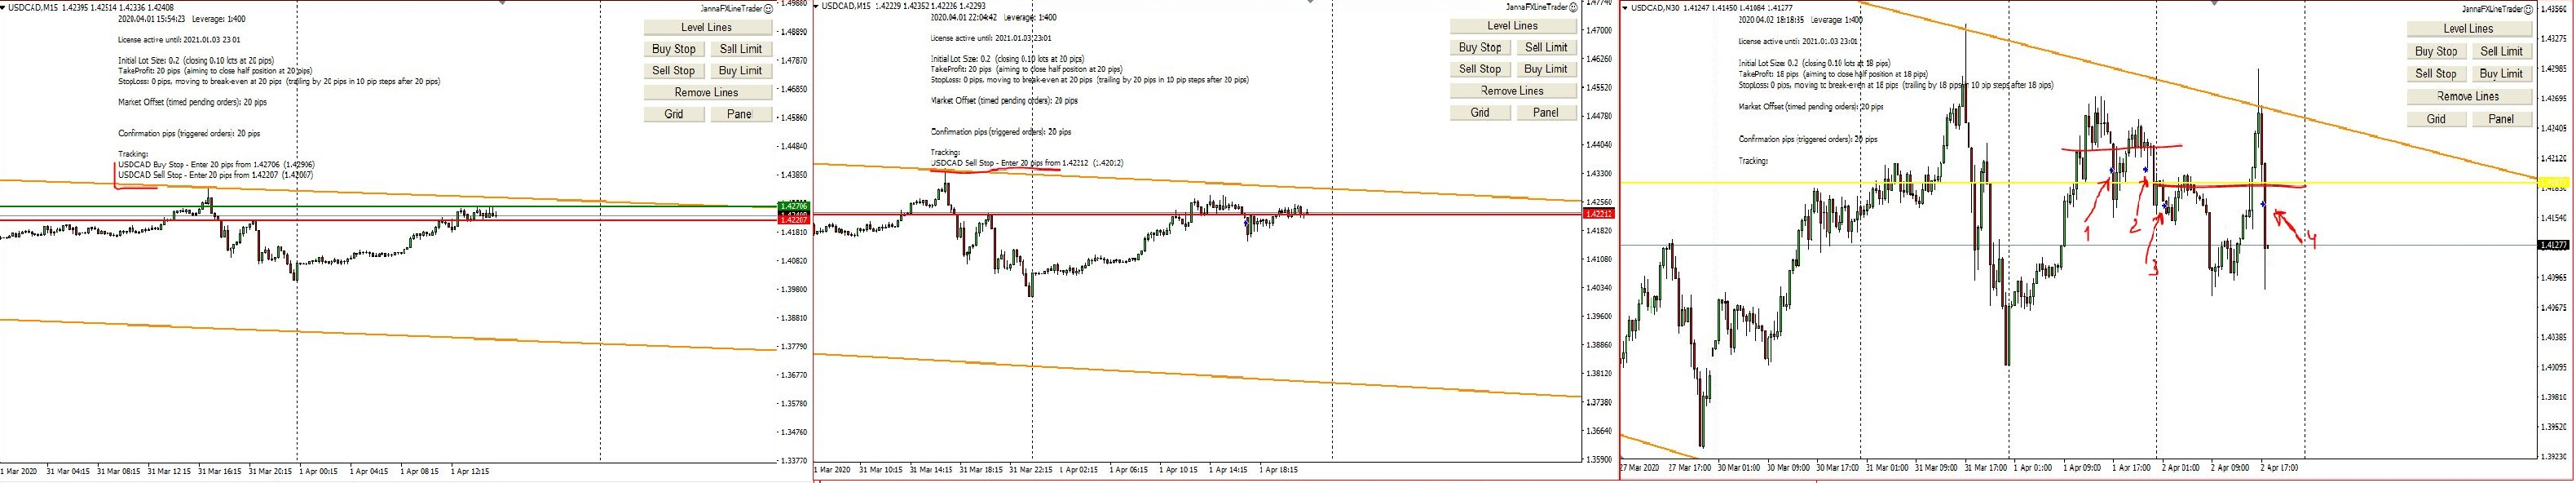 2 Days of Forex Trading, Examples of My Trades